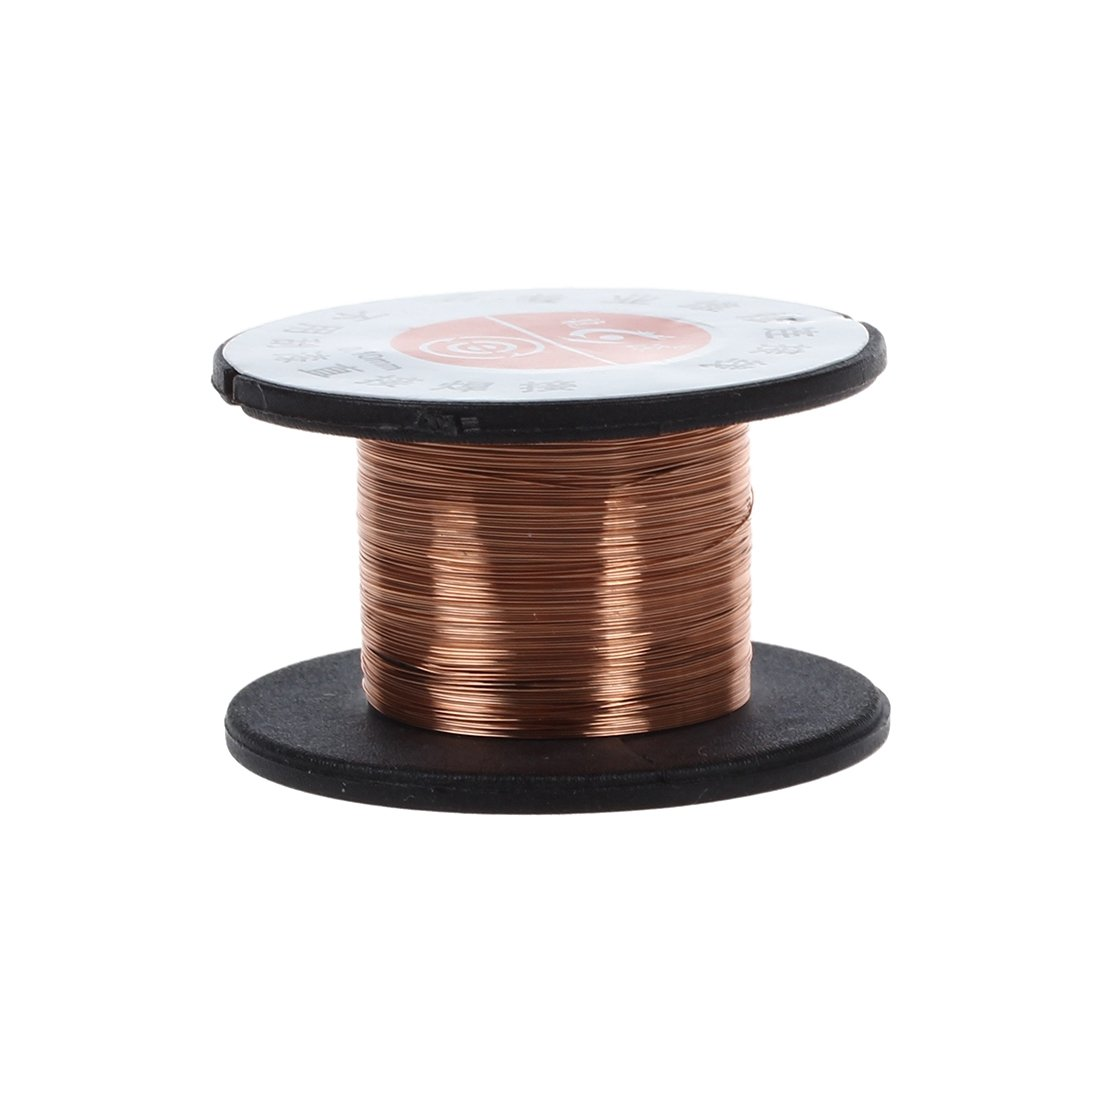 SODIAL(R) 1Pcs 15m 0.1MM Copper Soldering Solder Enamelled Reel Wire Roll Connecting